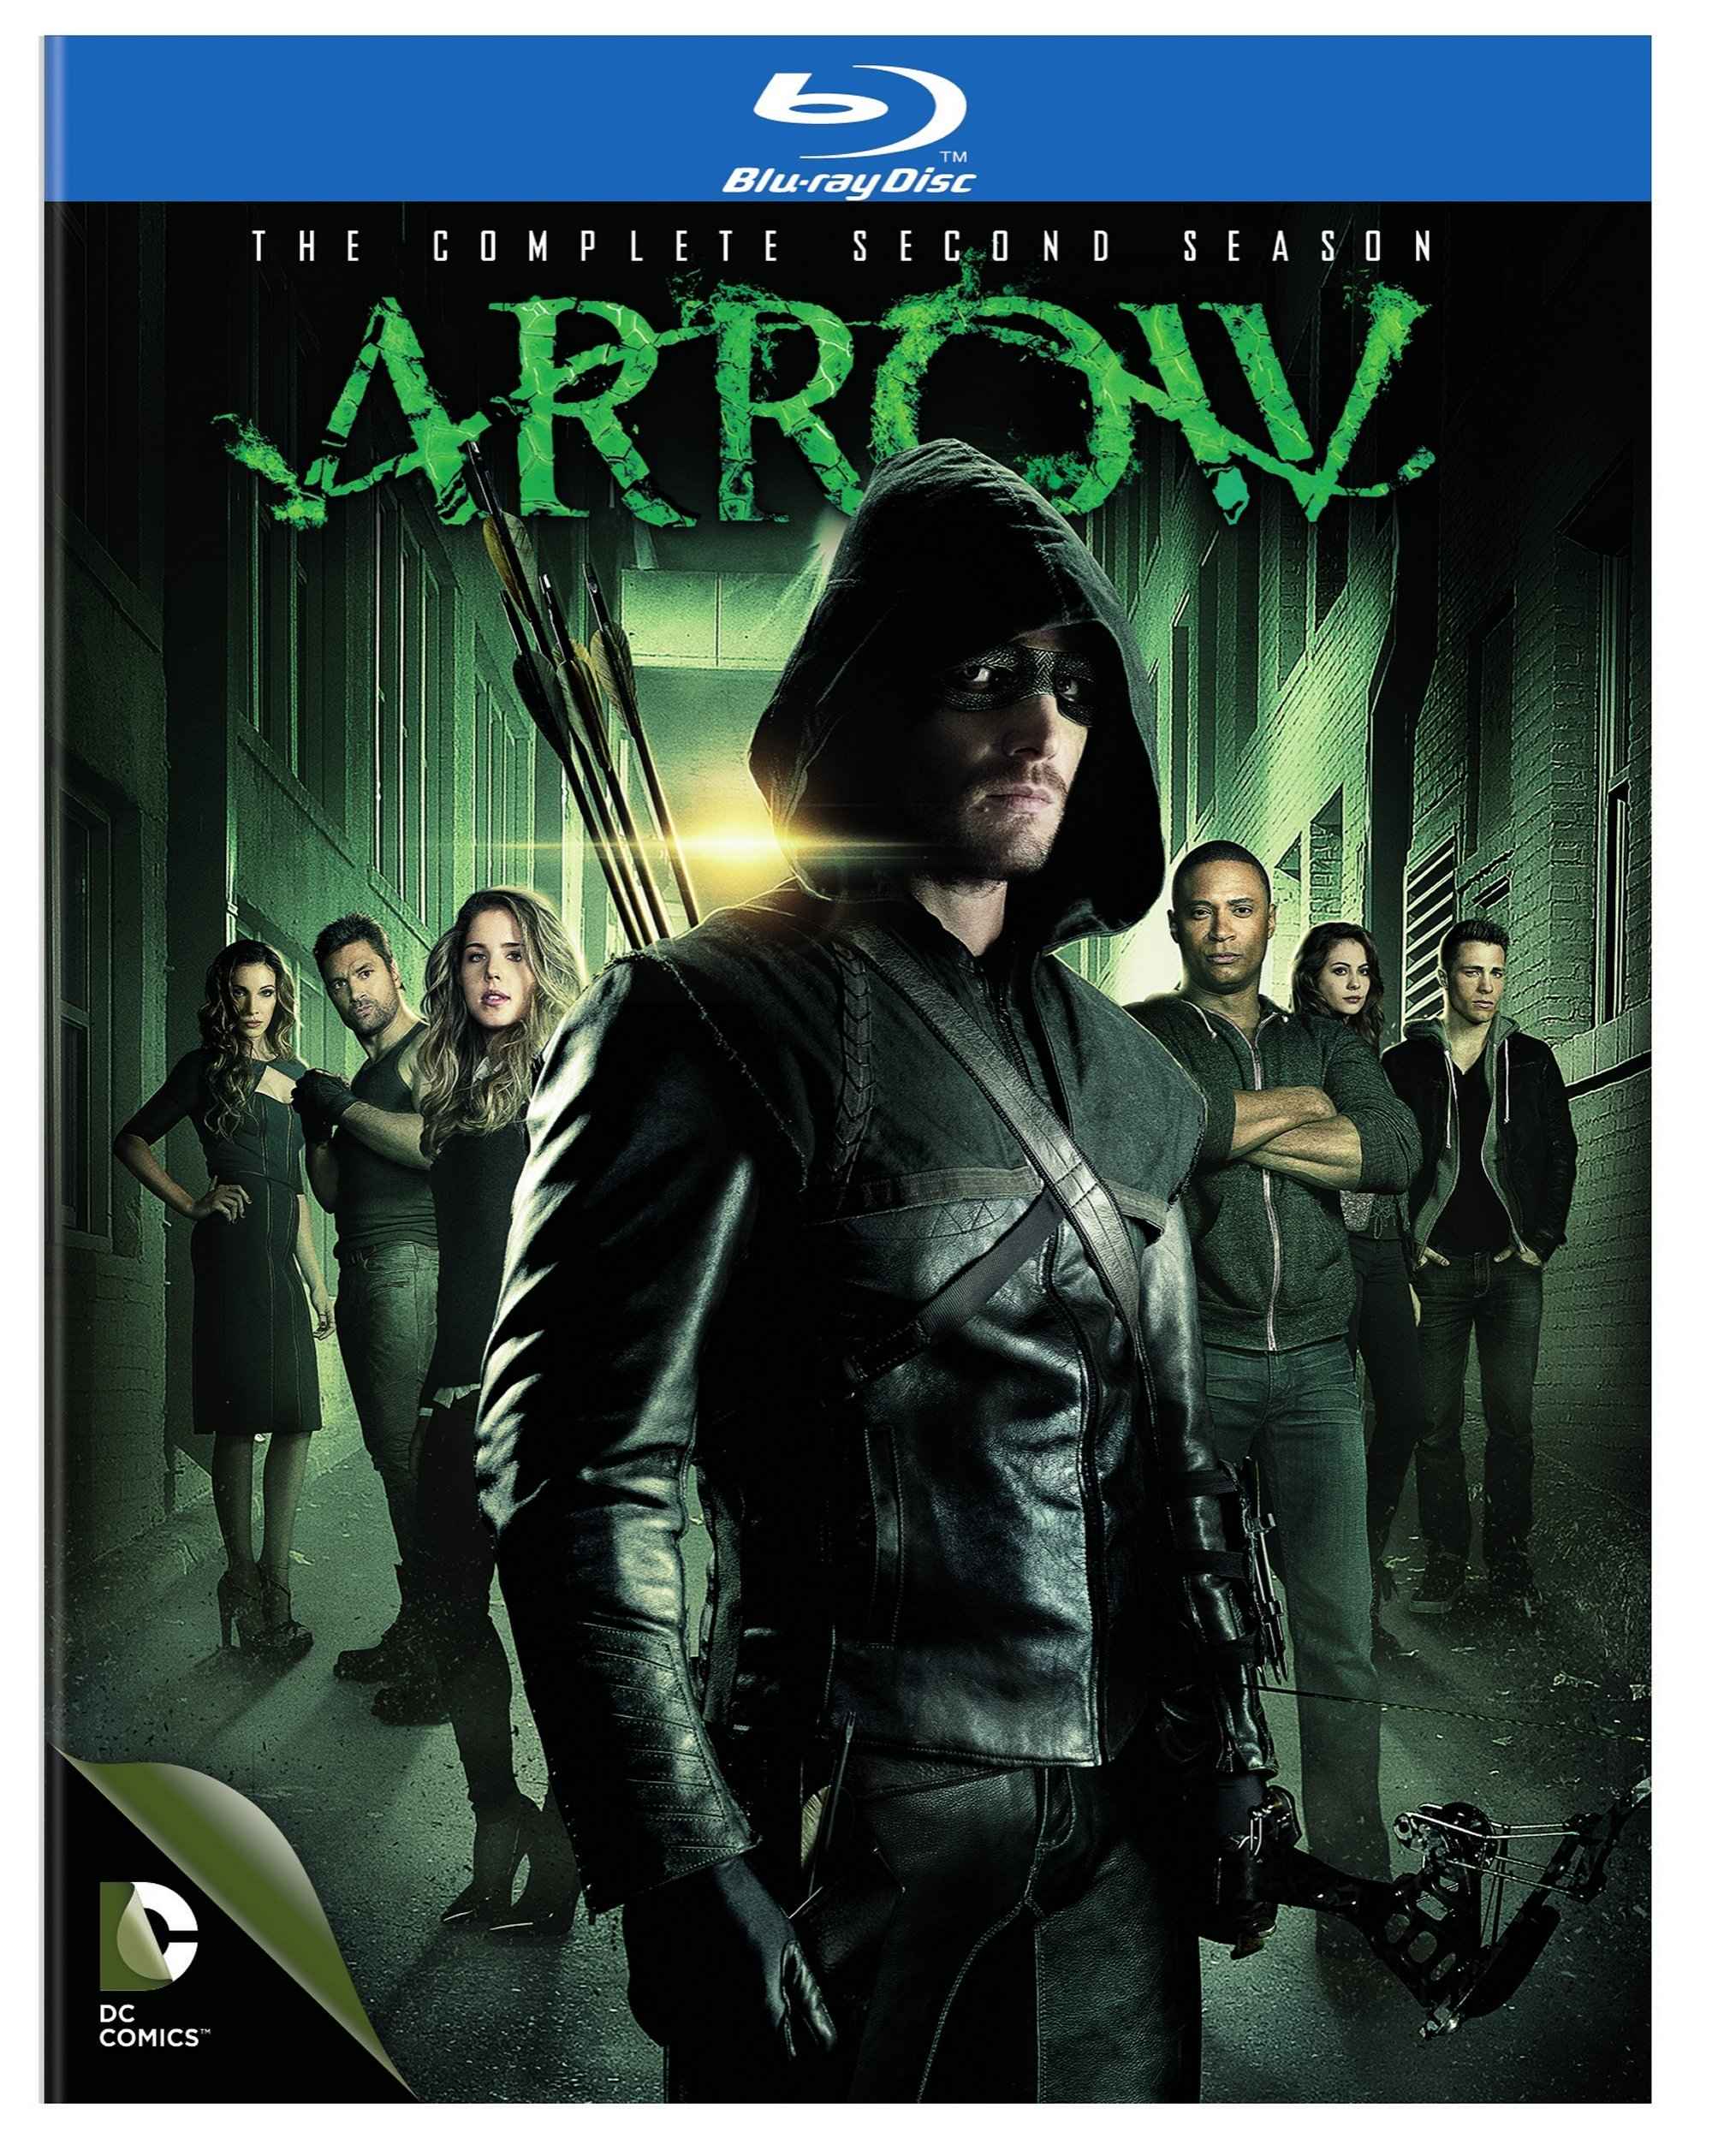 Blu-ray : Arrow: The Complete Second Season (DC) (Boxed Set, 4 Disc)